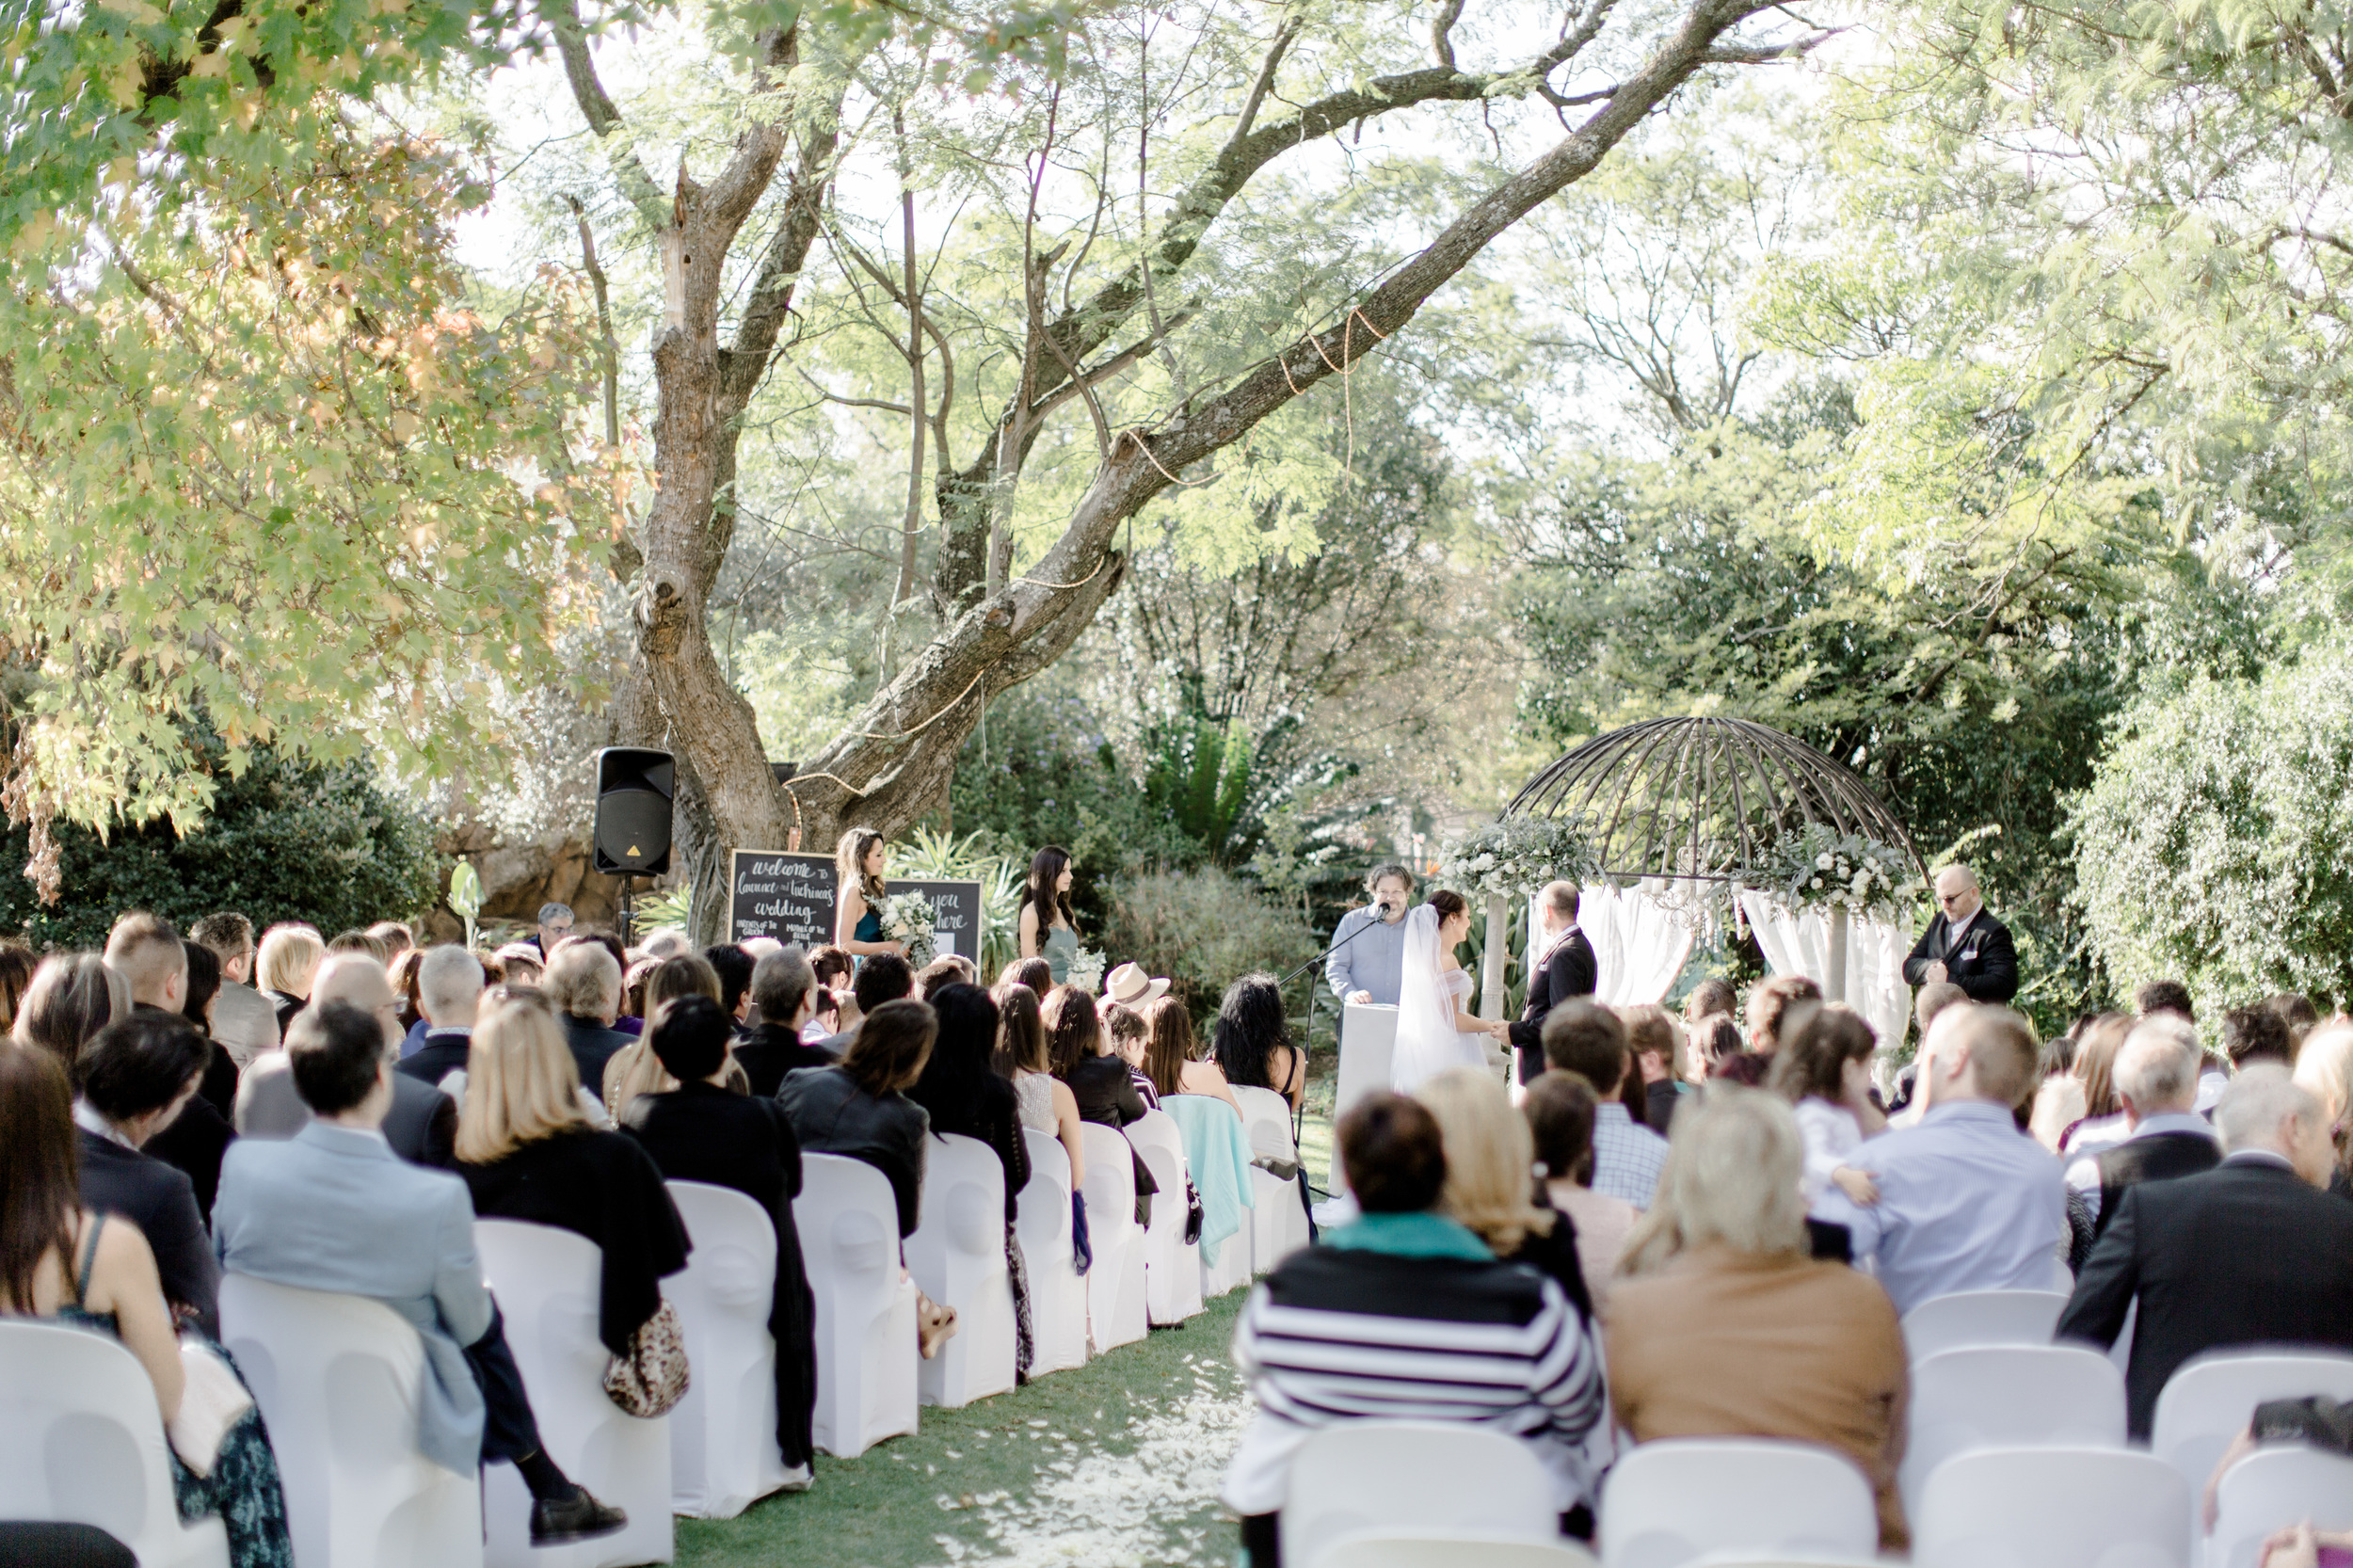 long Meadow johannesburg wedding venue photographer_051.jpg